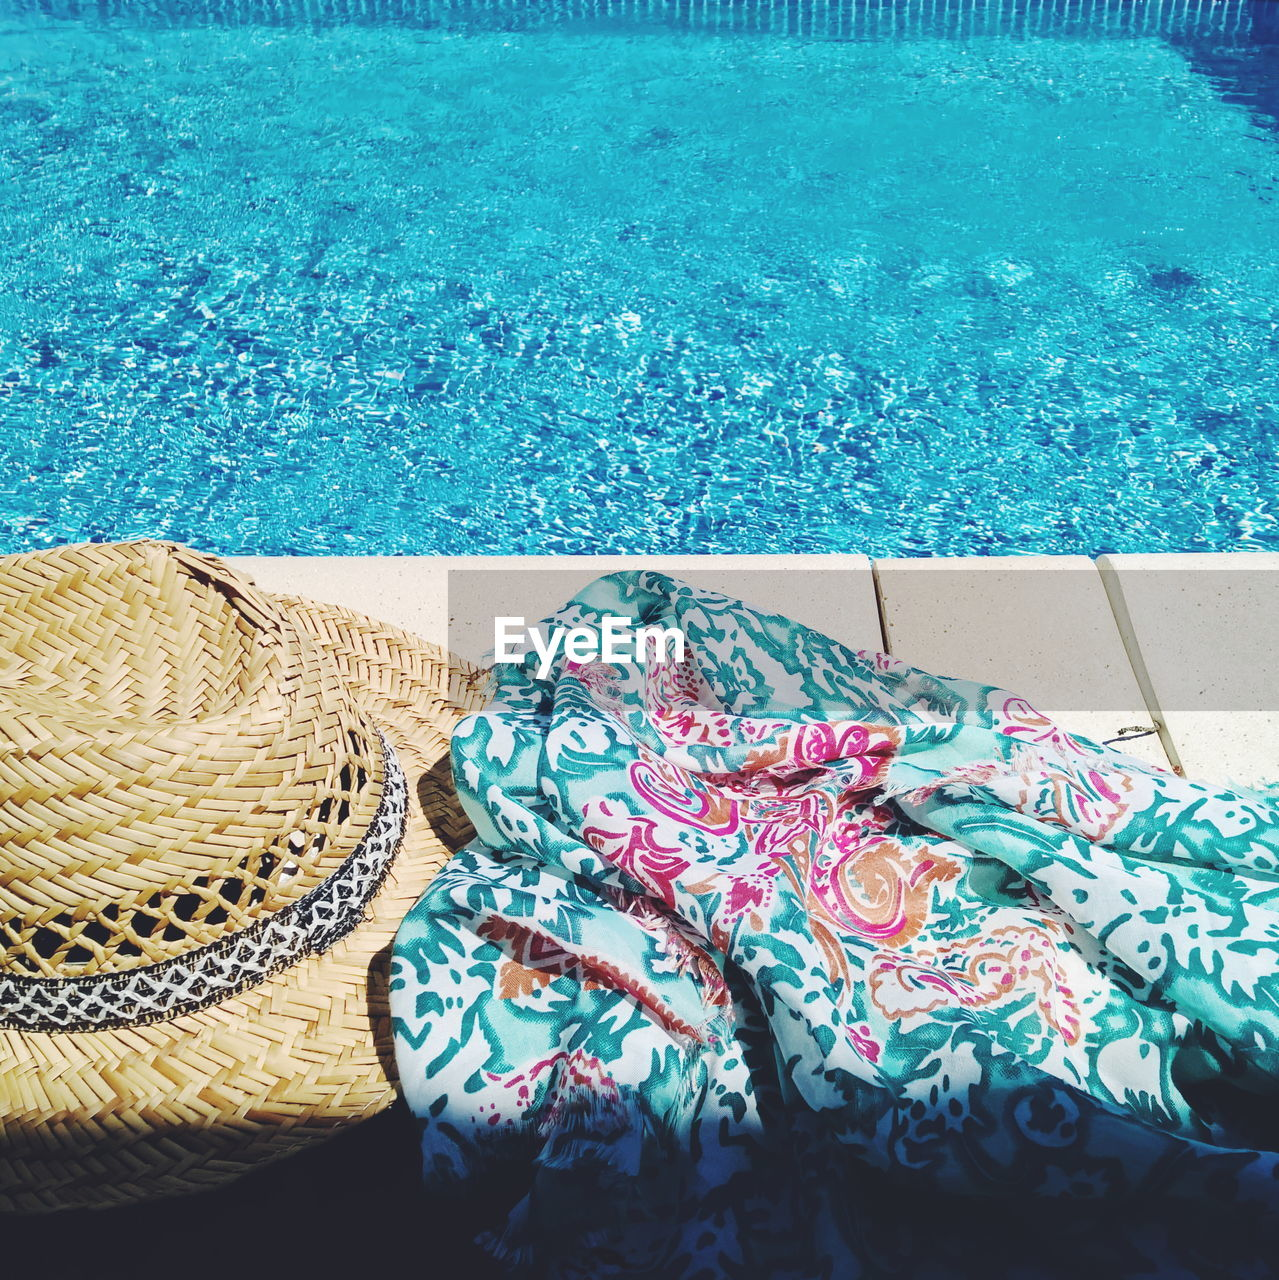 Close-Up Of Sunhat And Scarf By Poolside